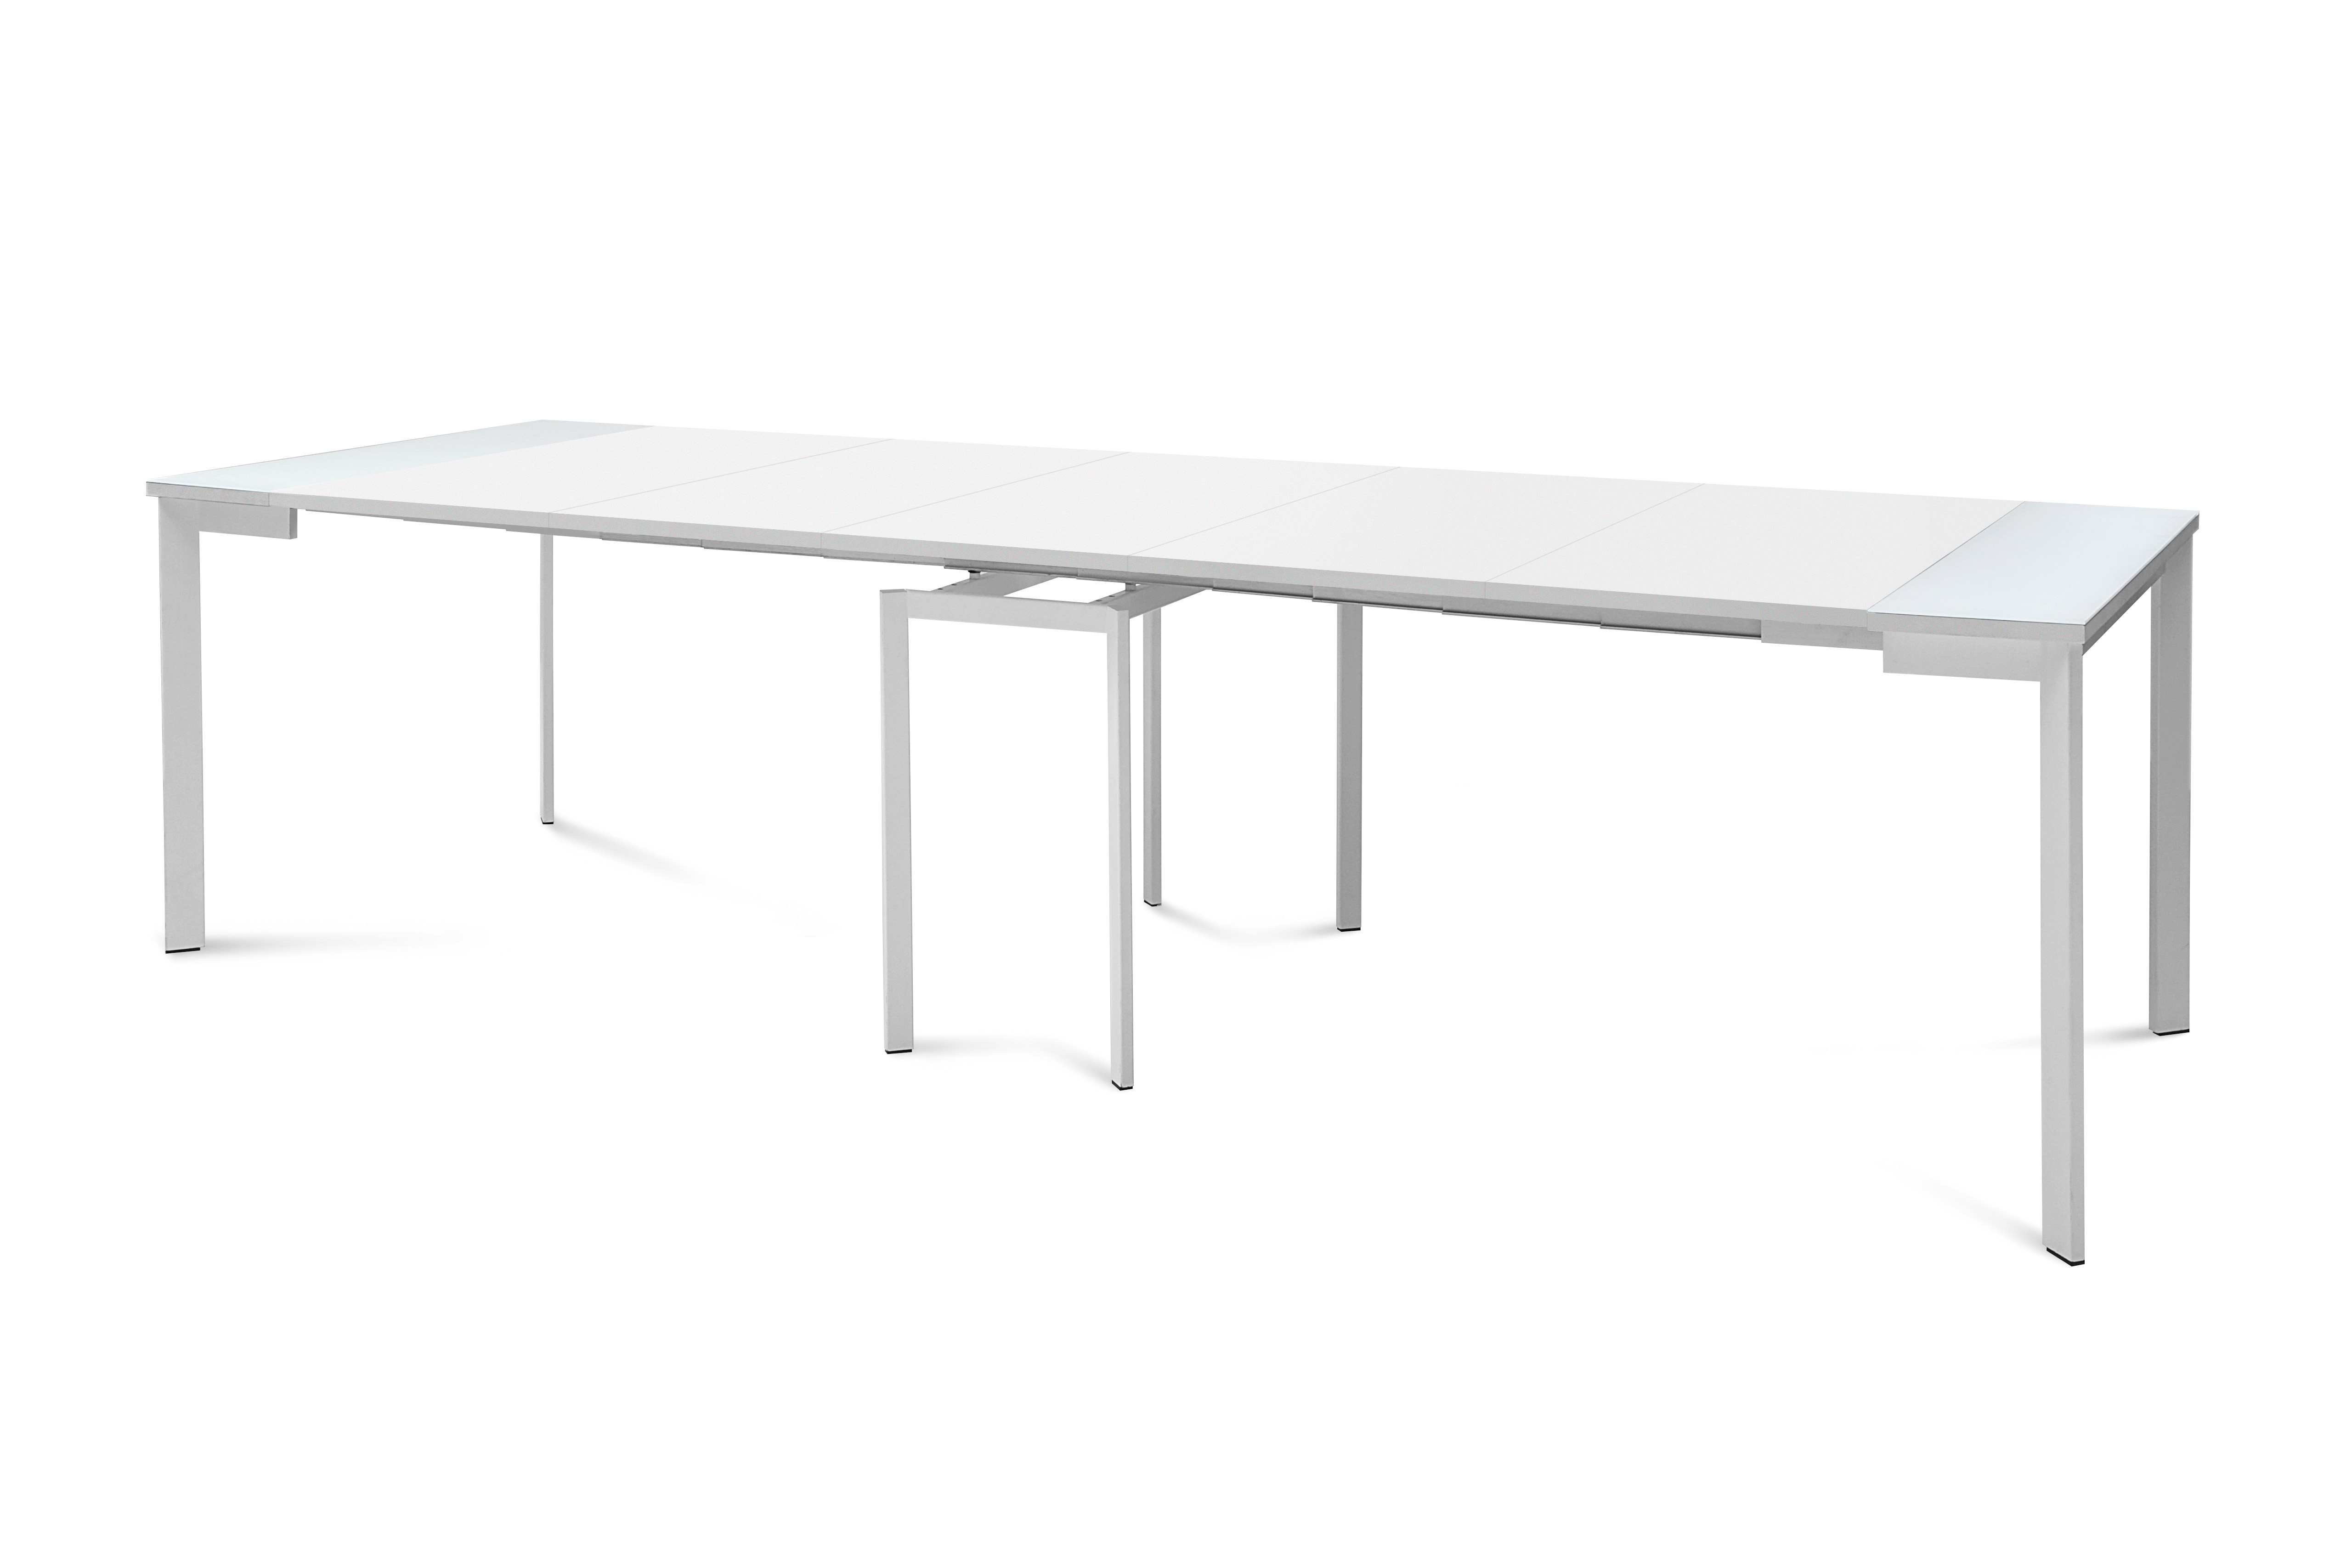 CONDOR LARGE DINING TABLE -30788